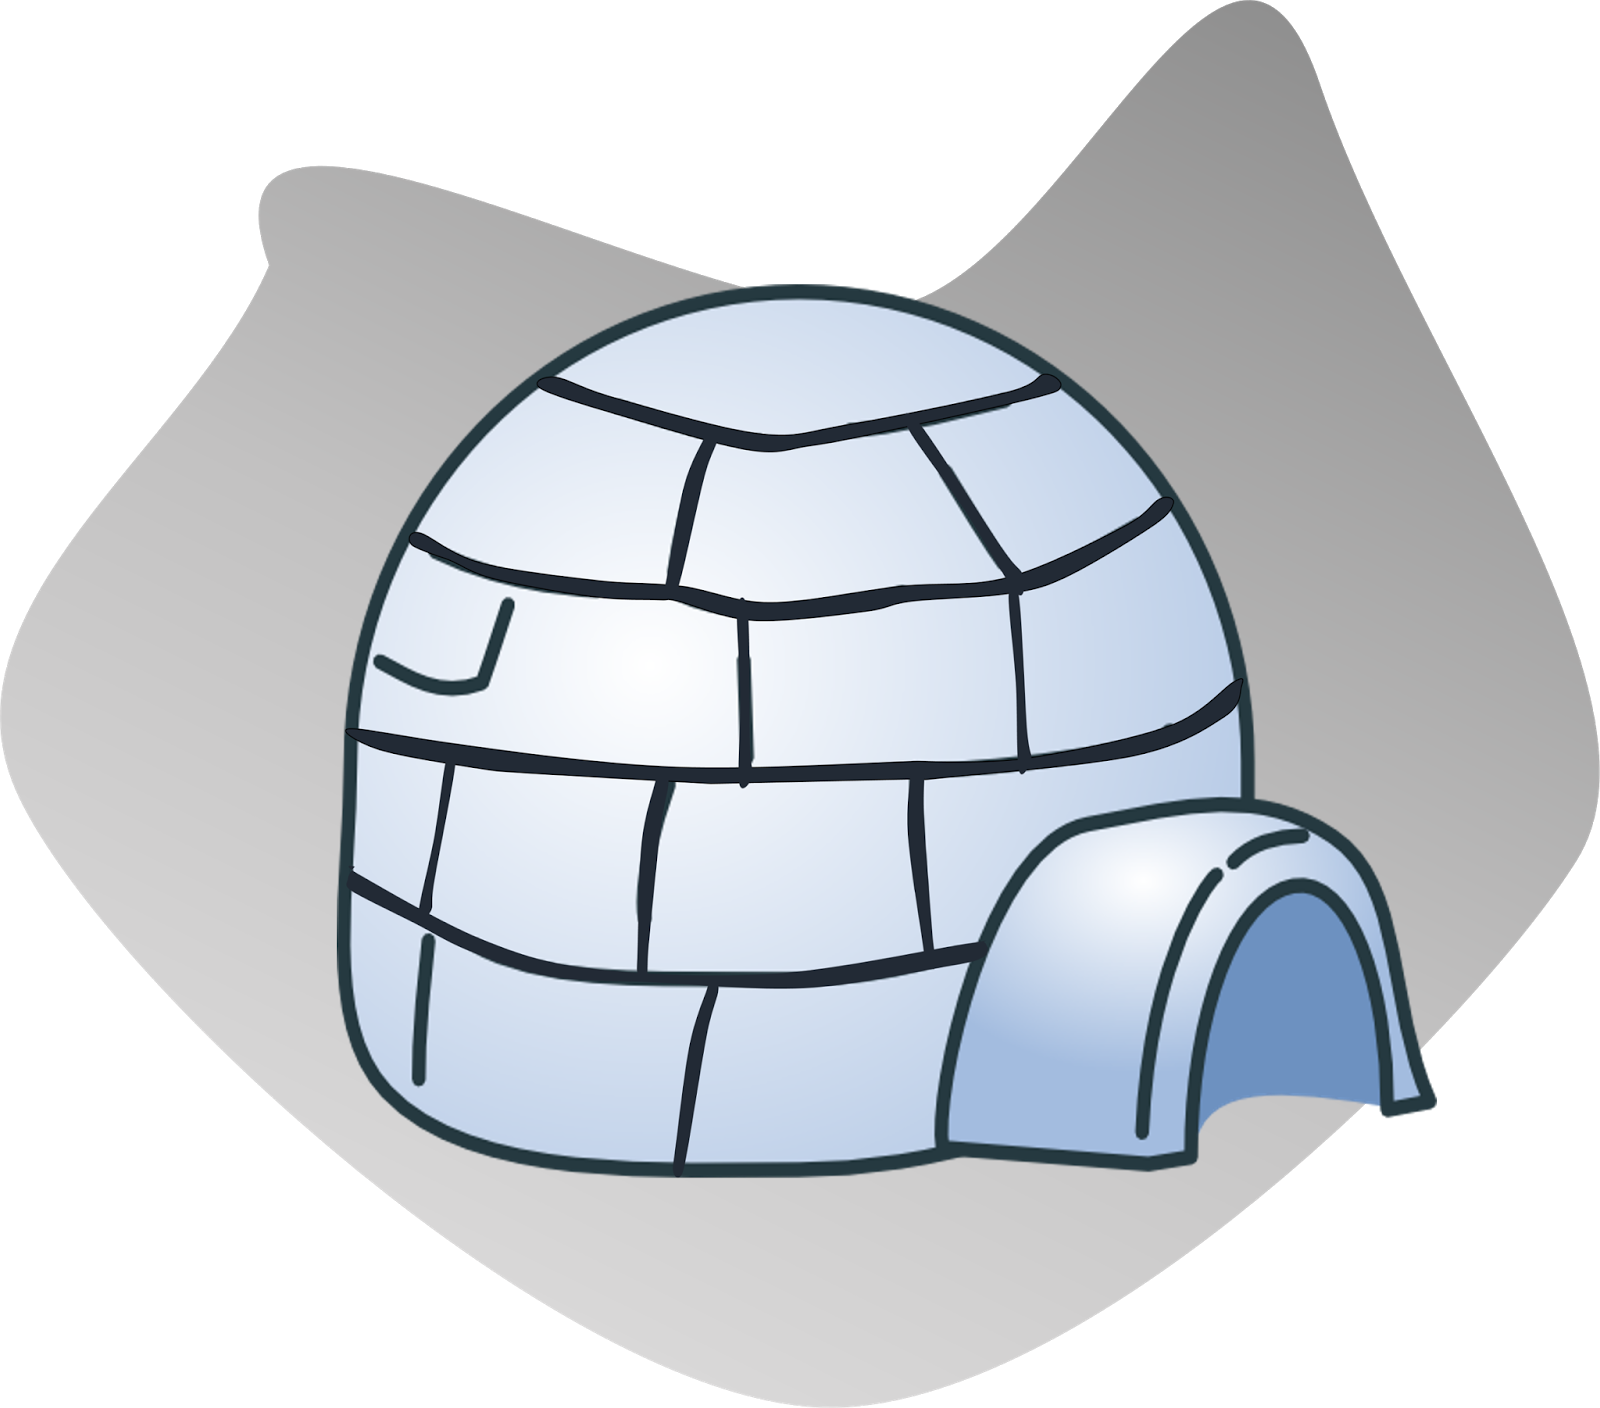 Igloo clipart transparent background.  collection of high